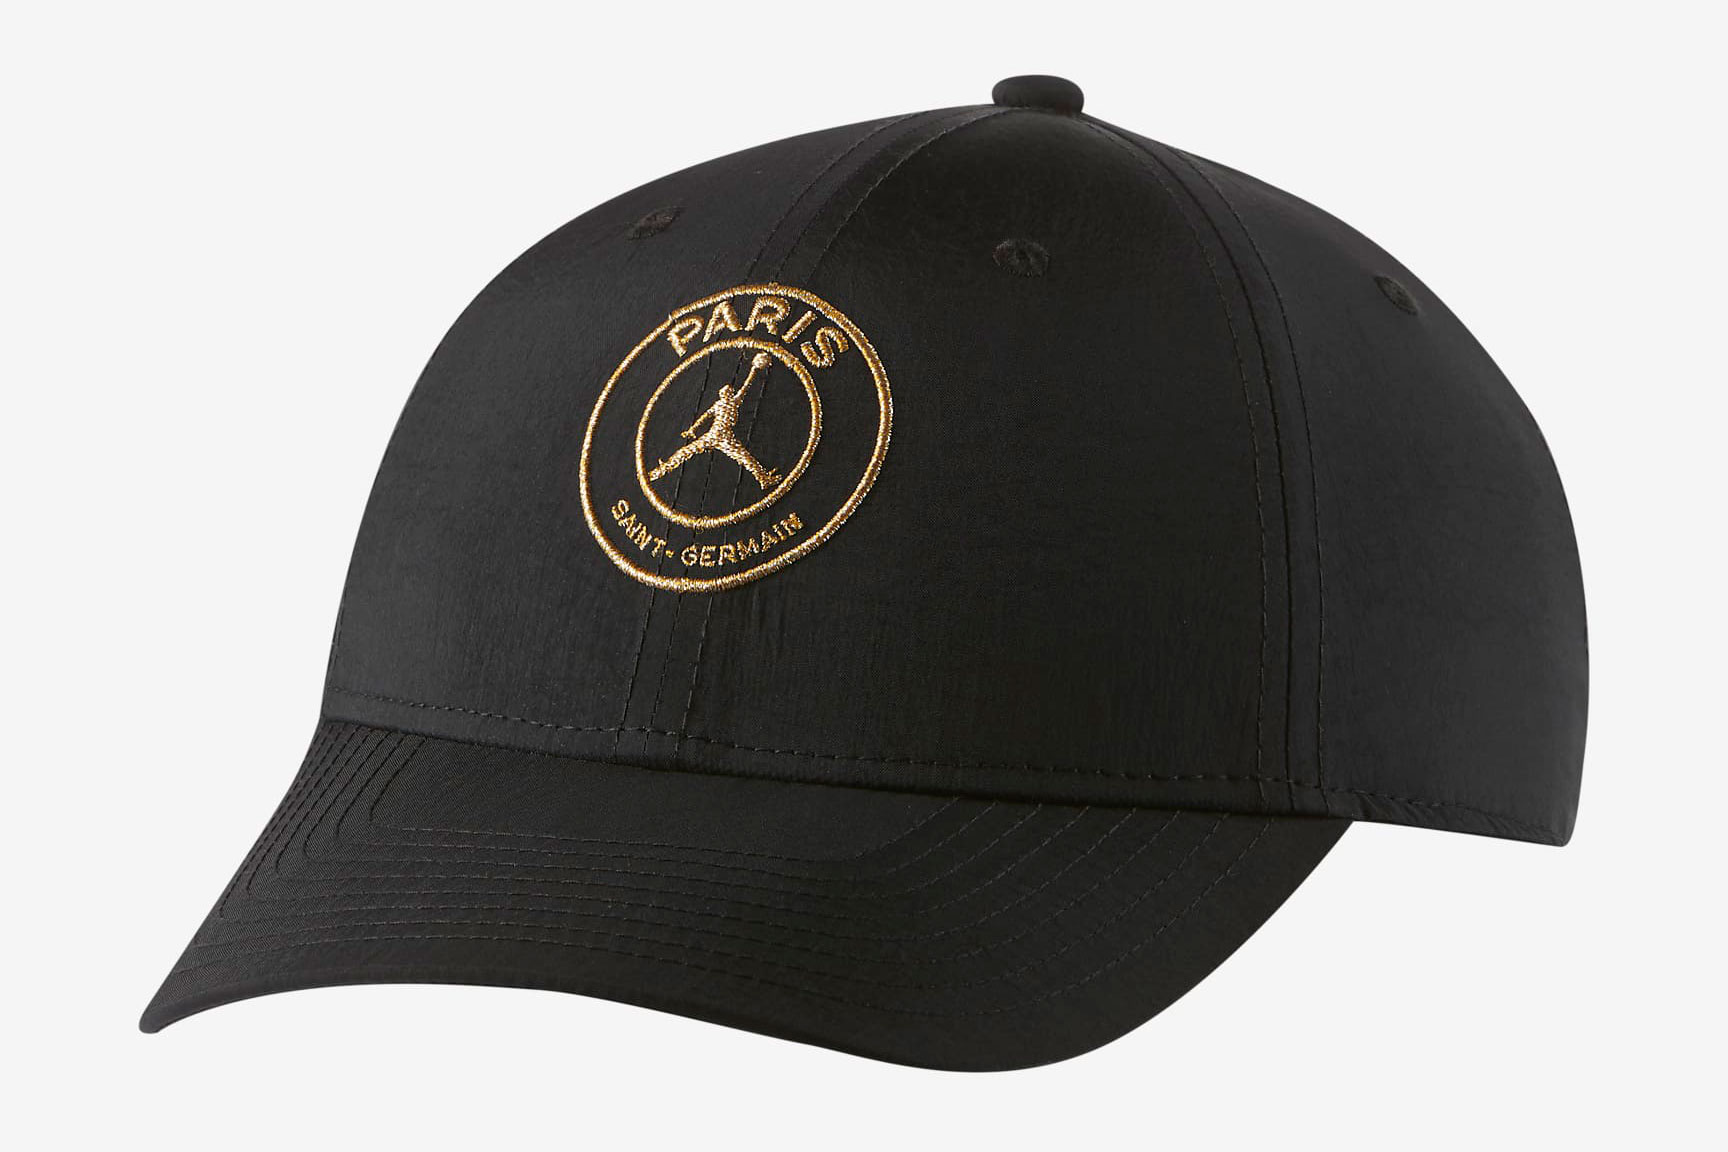 jordan-psg-paris-saint-germain-hat-black-gold-1